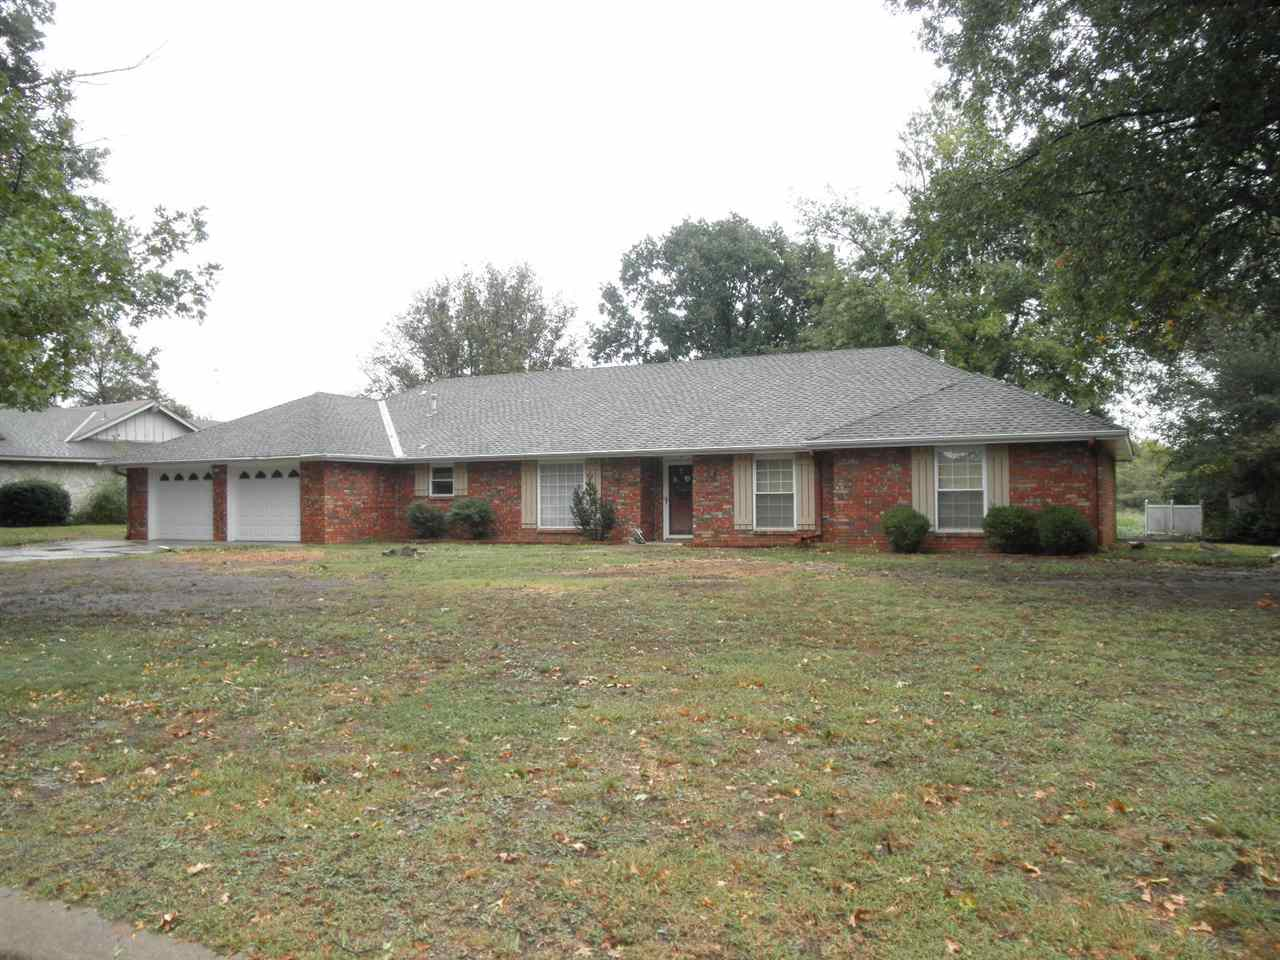 Sold Cross Sale W/ MLS | 2805 Homestead Ponca City, OK 74604 11